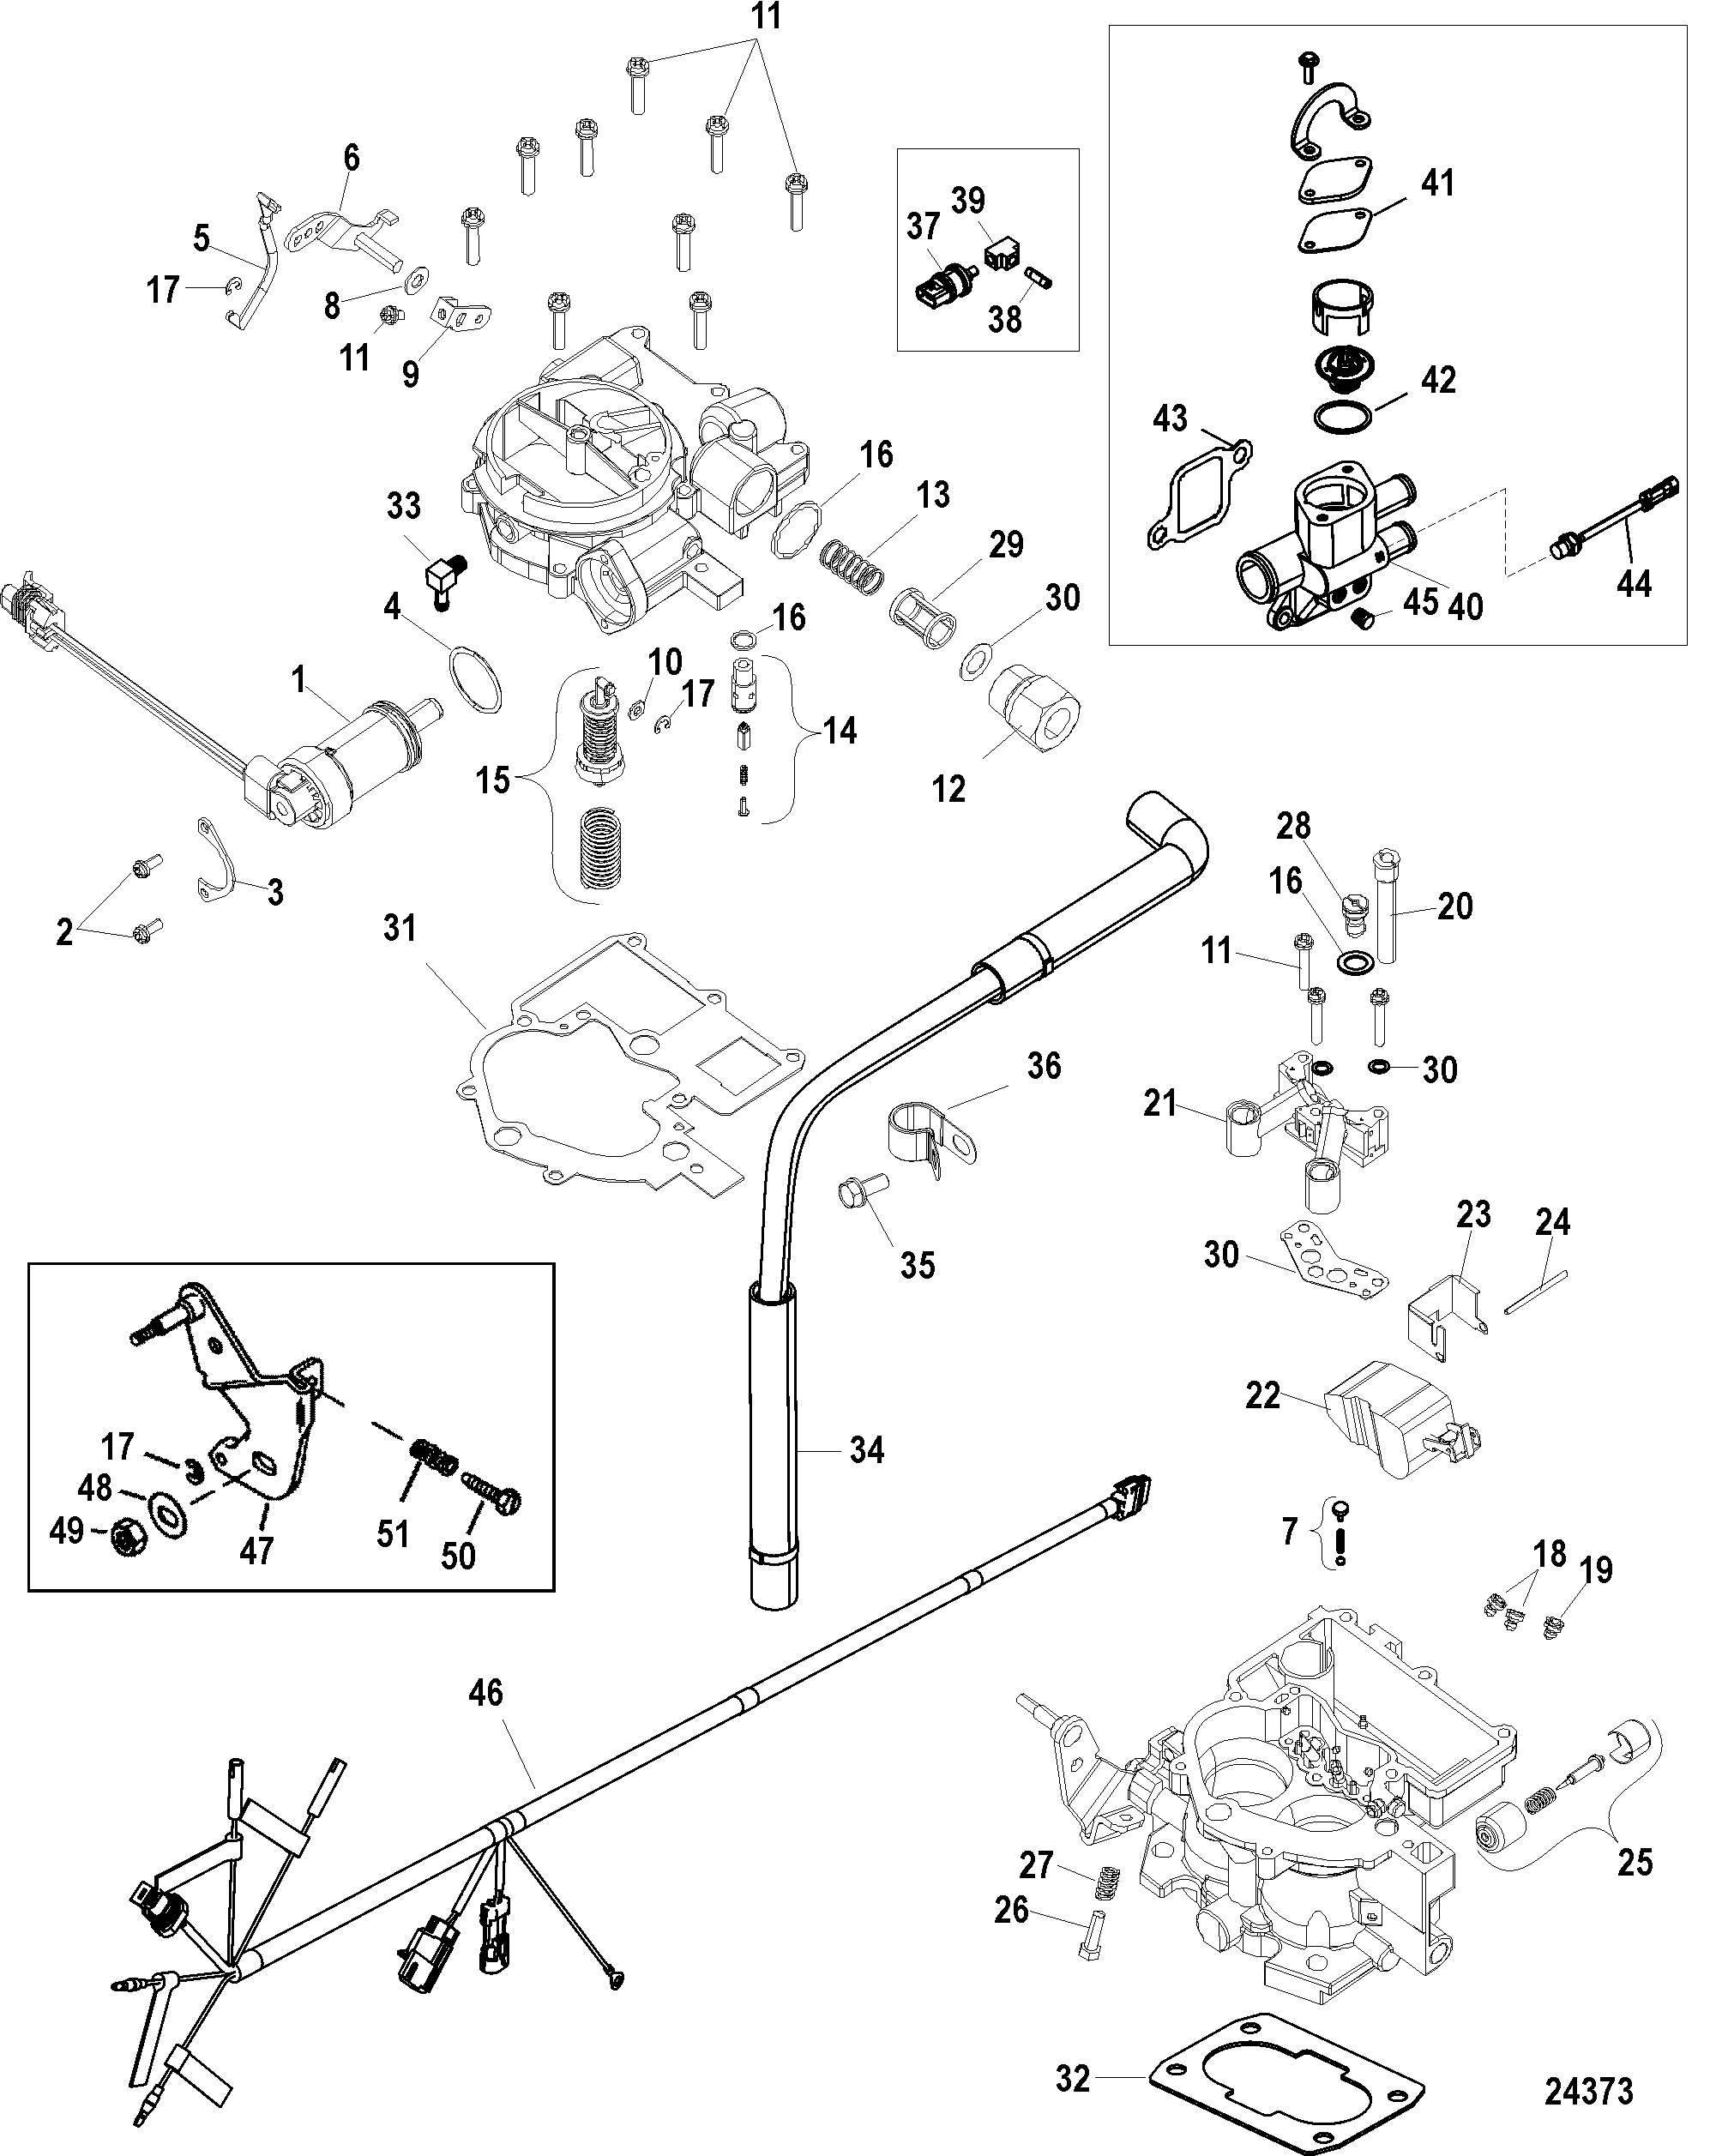 3 0 Mercruiser Wiring Diagram Diagrams 65 Hp Mercury Outboard Motor Engine Parts On Images 25